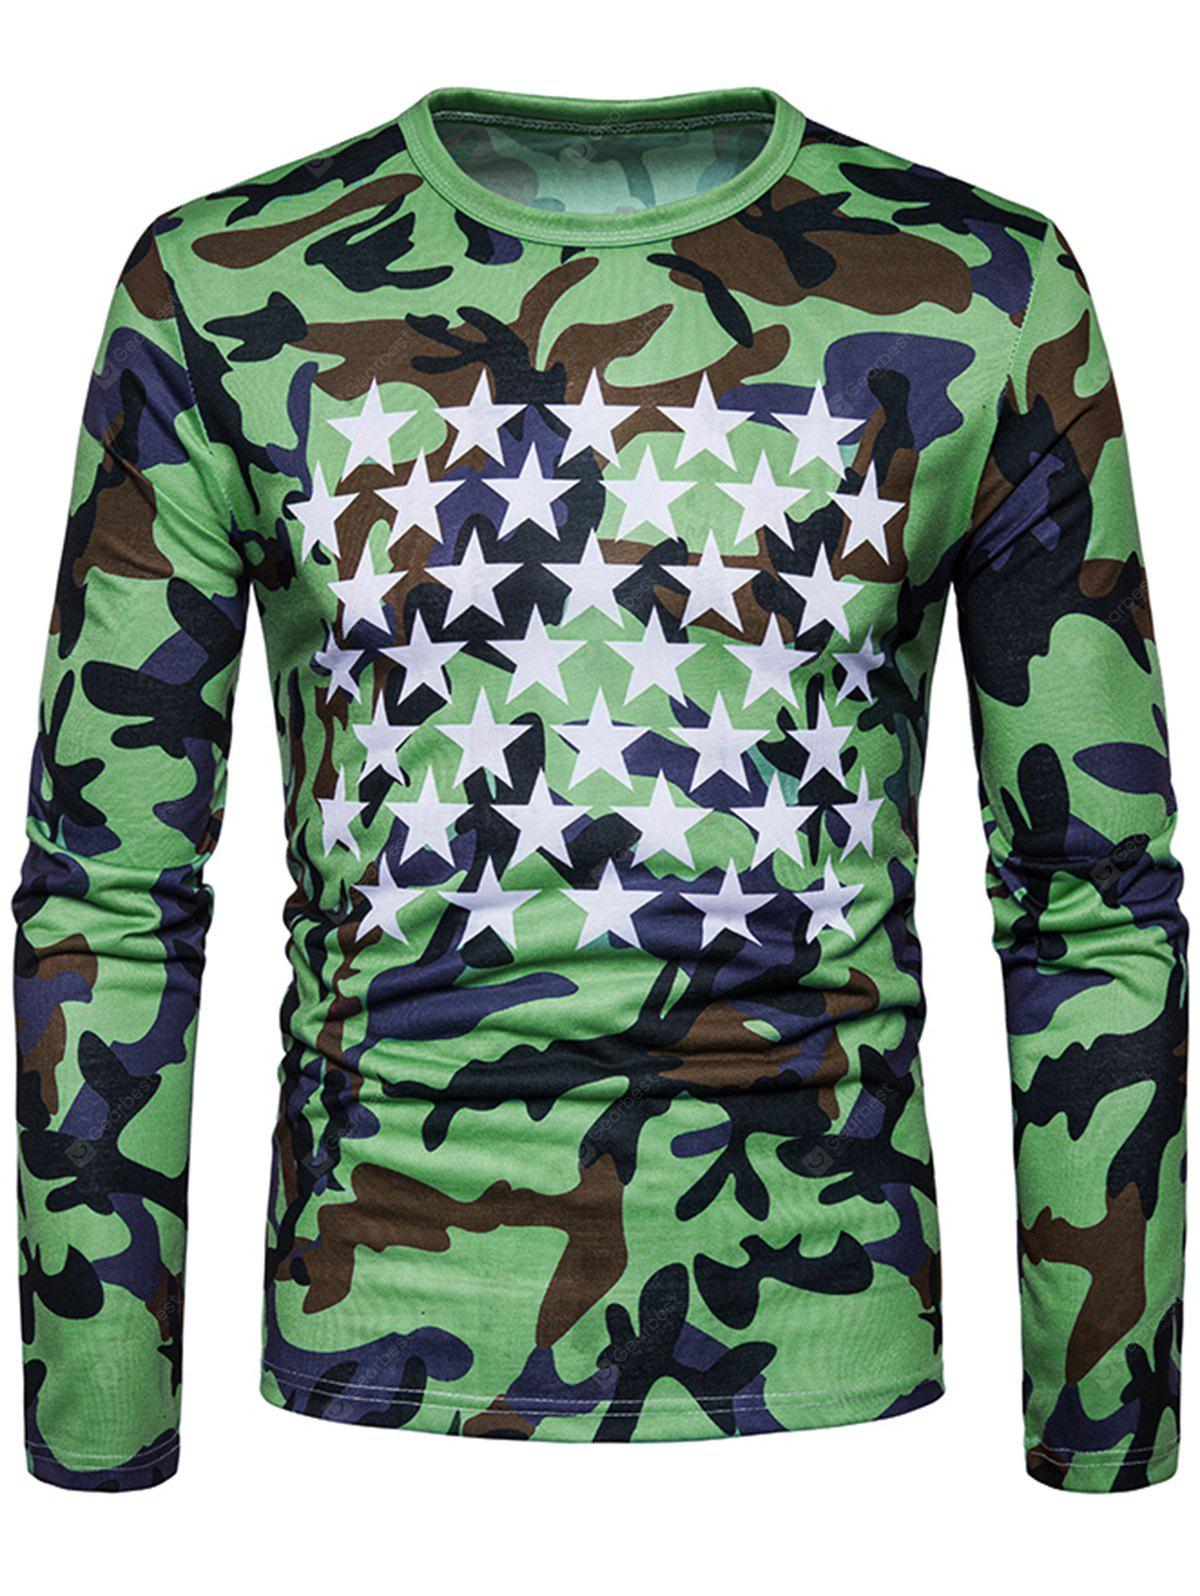 Camouflage and Stars Long Sleeve T-shirt